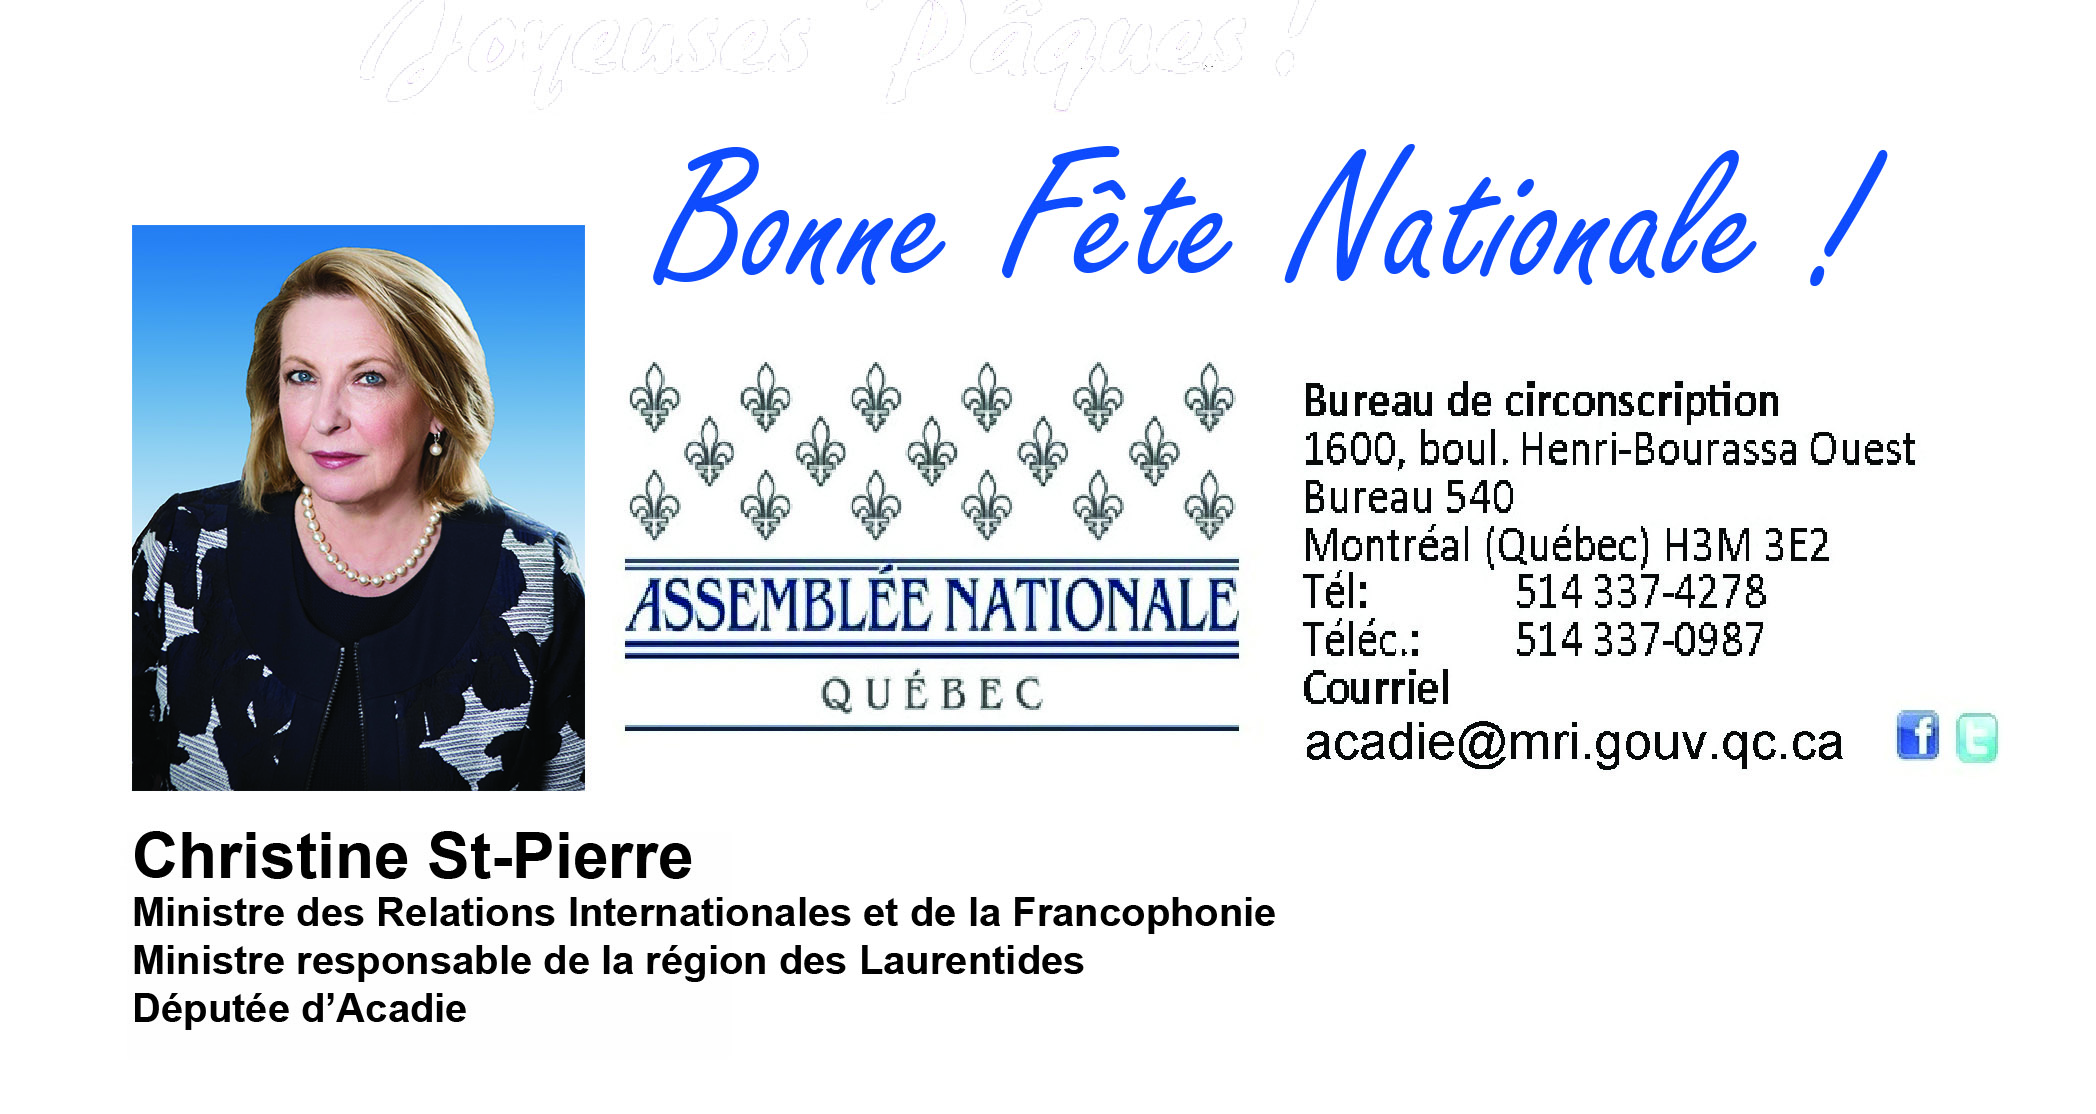 Christine St-Pierre / Fête nationale